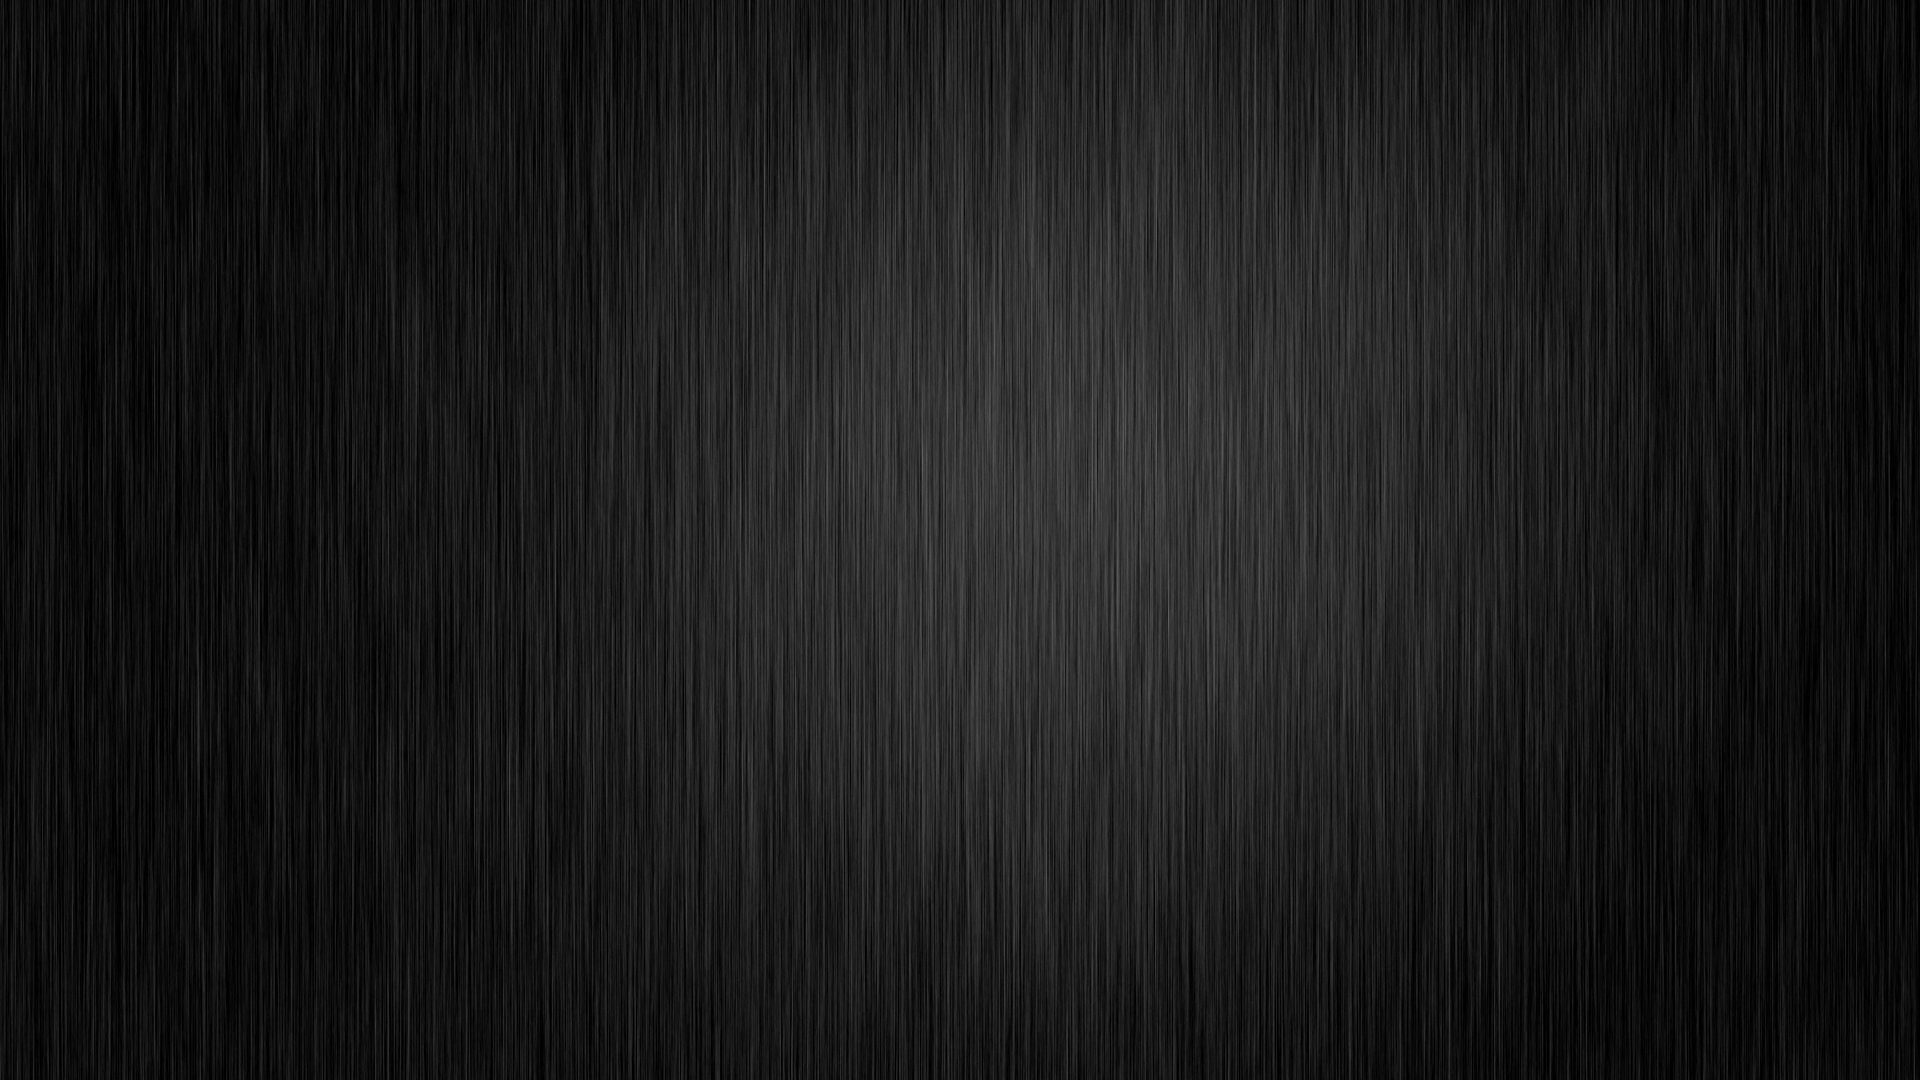 1920x1080 Black Gradient Laptop Full HD 1080P 4k Wallpapers